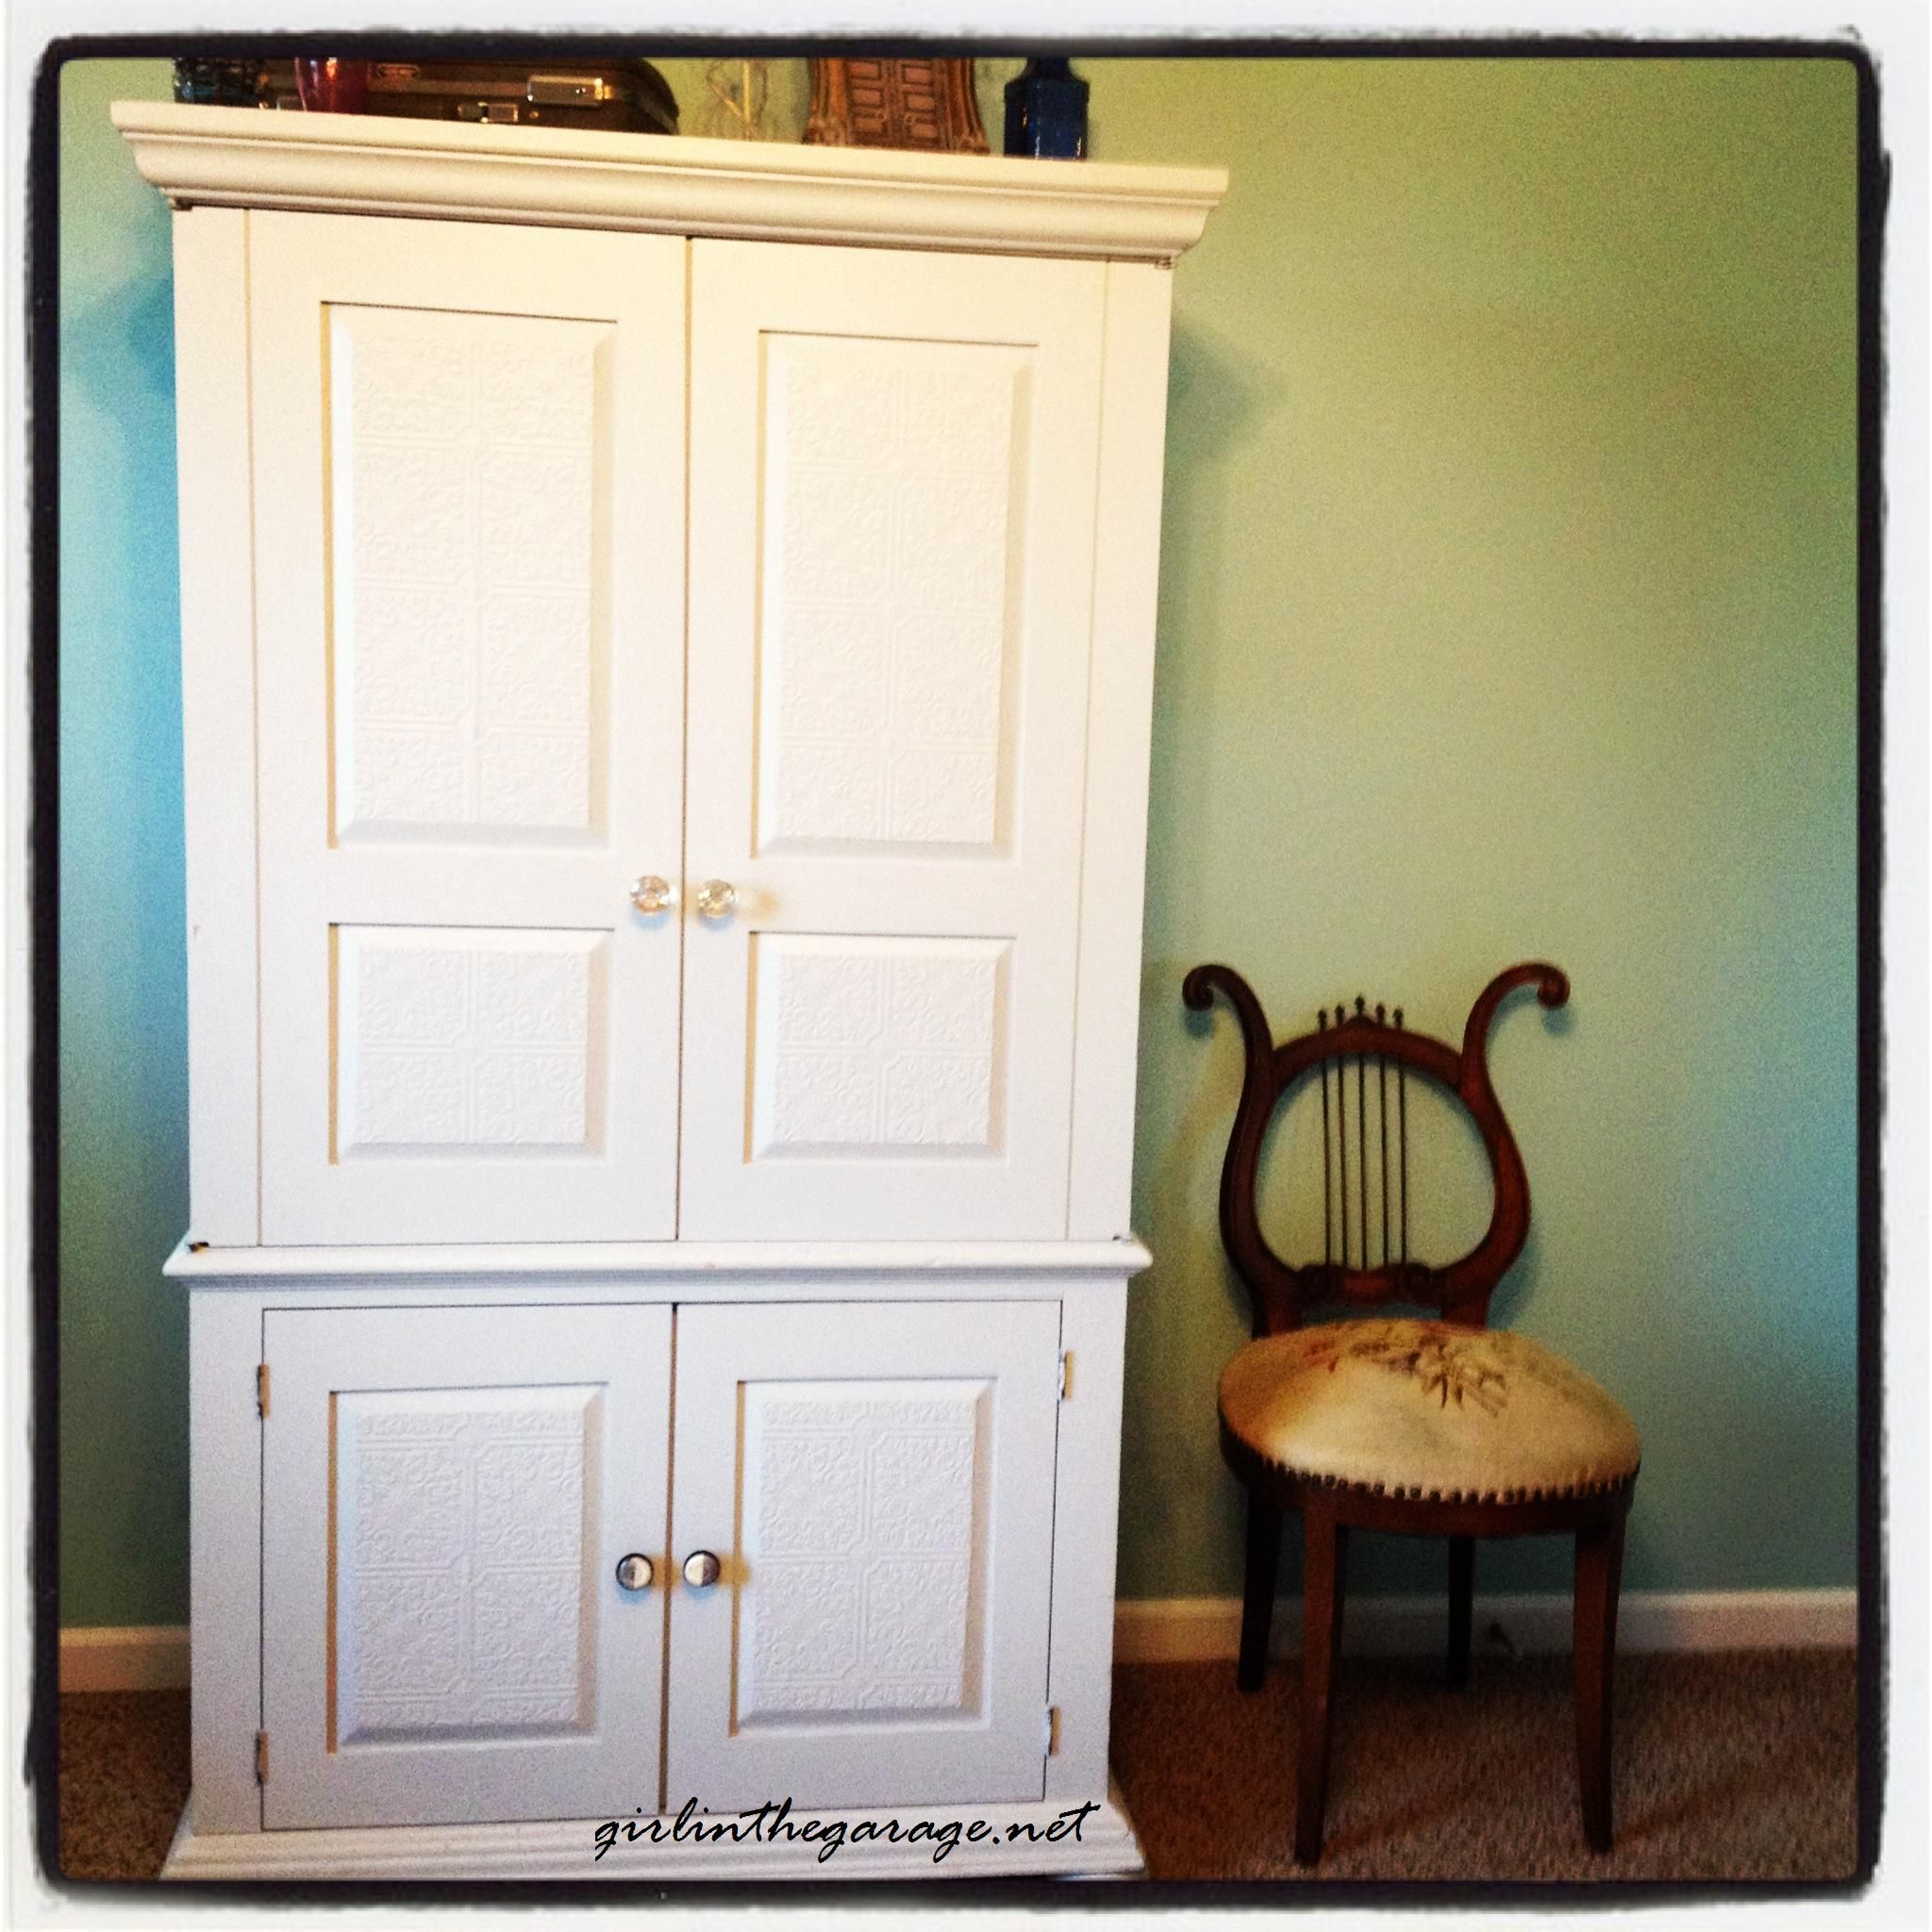 Drab-to-Fab Armoire Makeover | Pinterest | Painted wallpaper ...